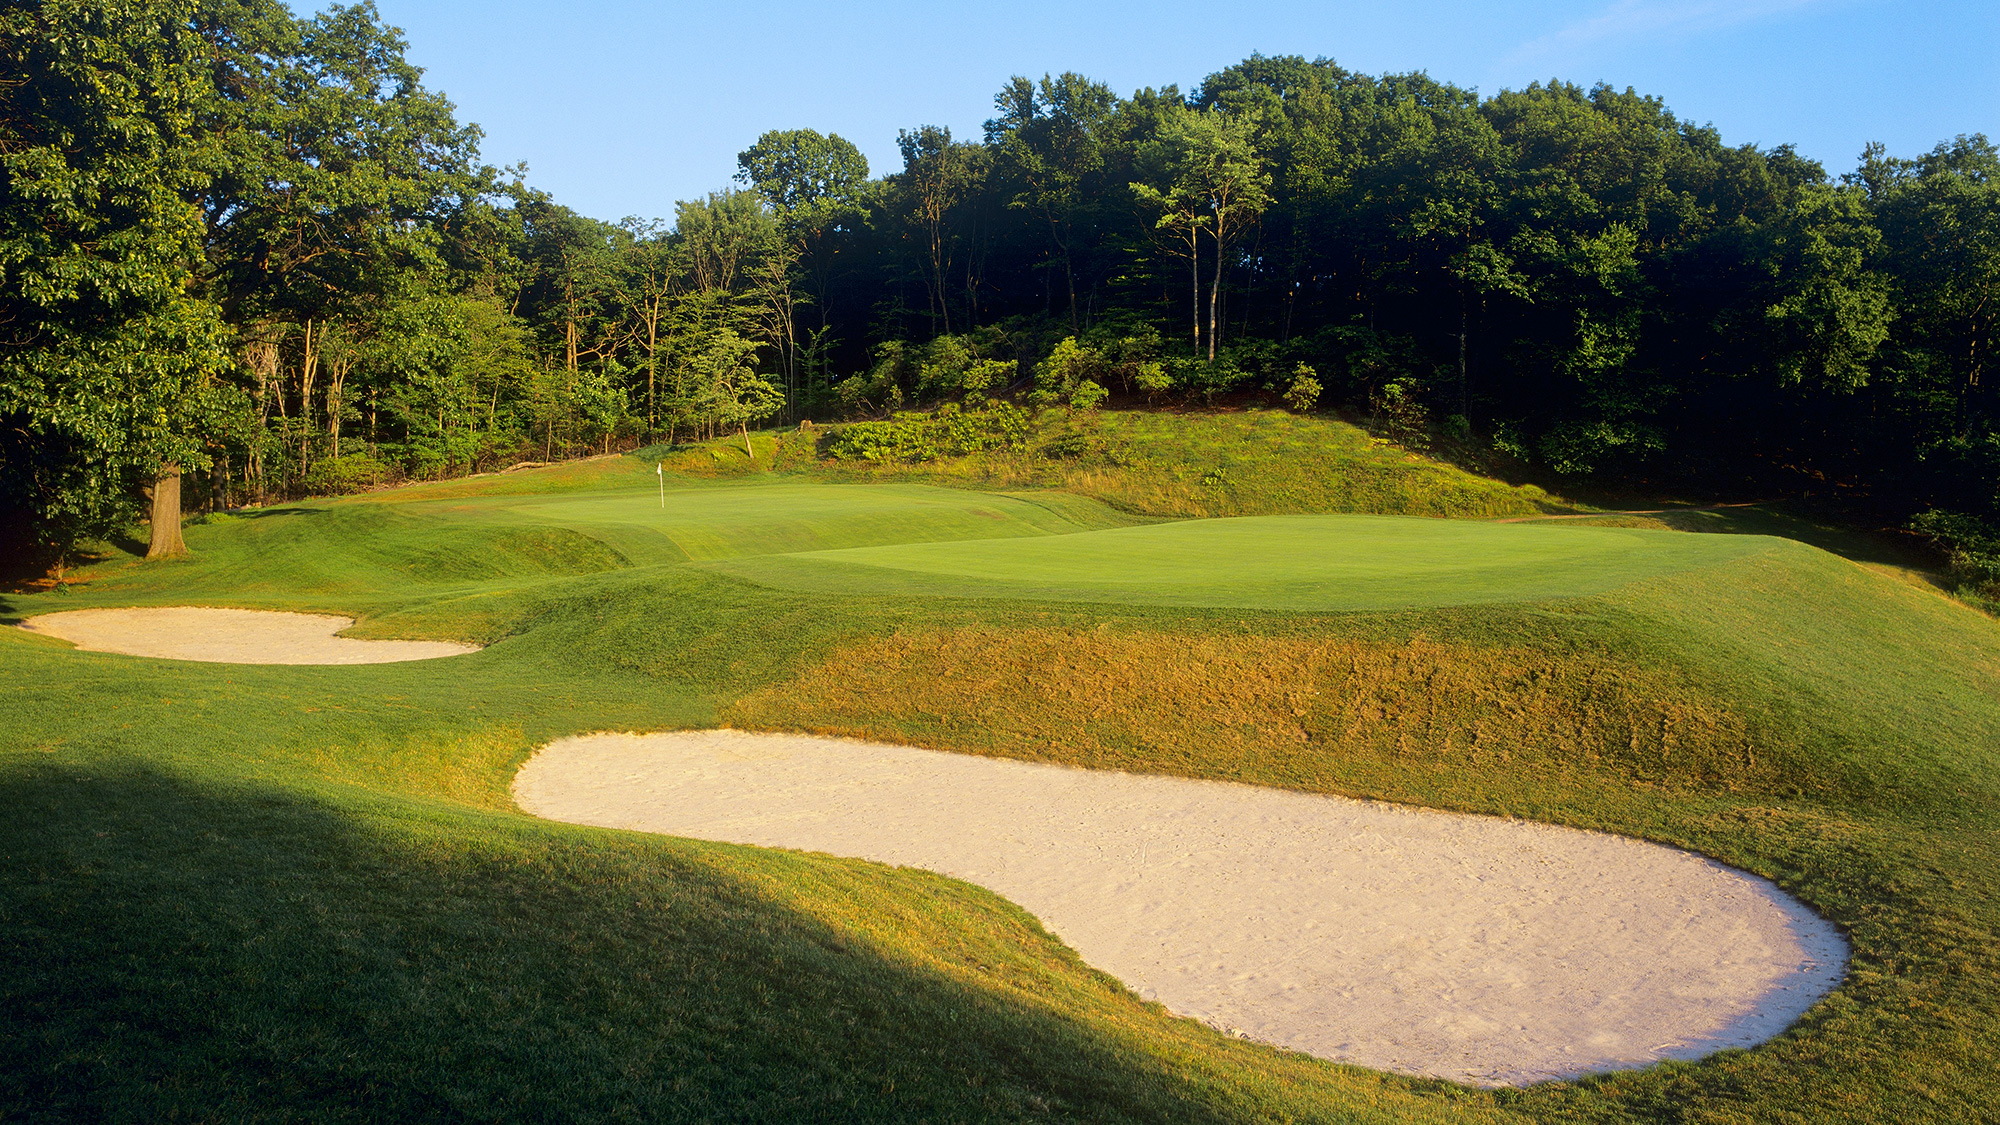 """<p><strong>Public:</strong> Lake of Isles (North), North Stonington</p><p><strong>⇐ Private:</strong> Yale University, New Haven</p>                       <p><a class=""""standard-button"""" href=""""http://www.golf.com/tee-times#/course/lake-of-isles-north-course-connecticut"""" target=""""_blank"""">TEE TIMES</a></p>"""